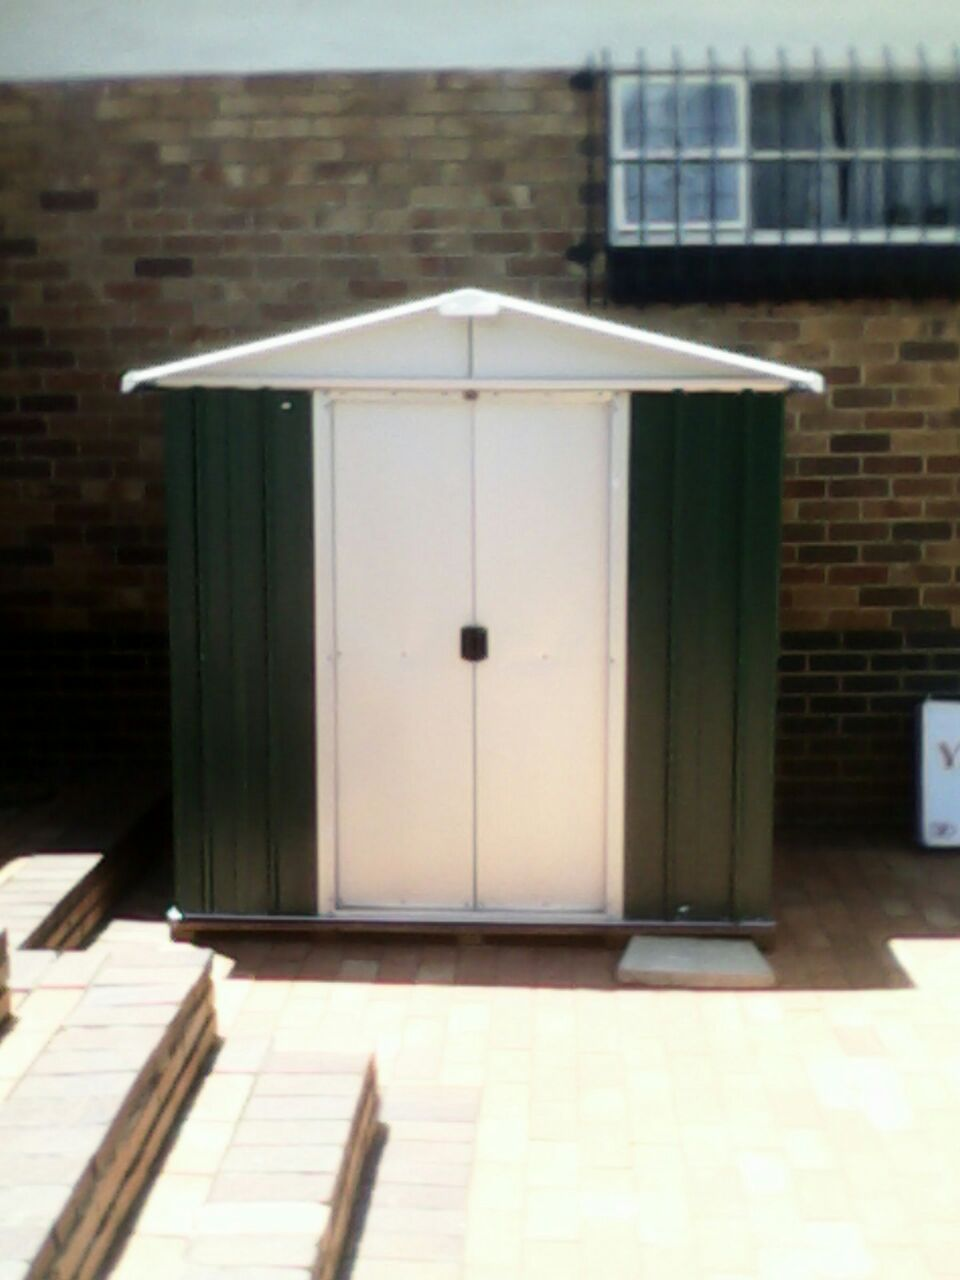 Garden sheds delivered countrywide. From R5495